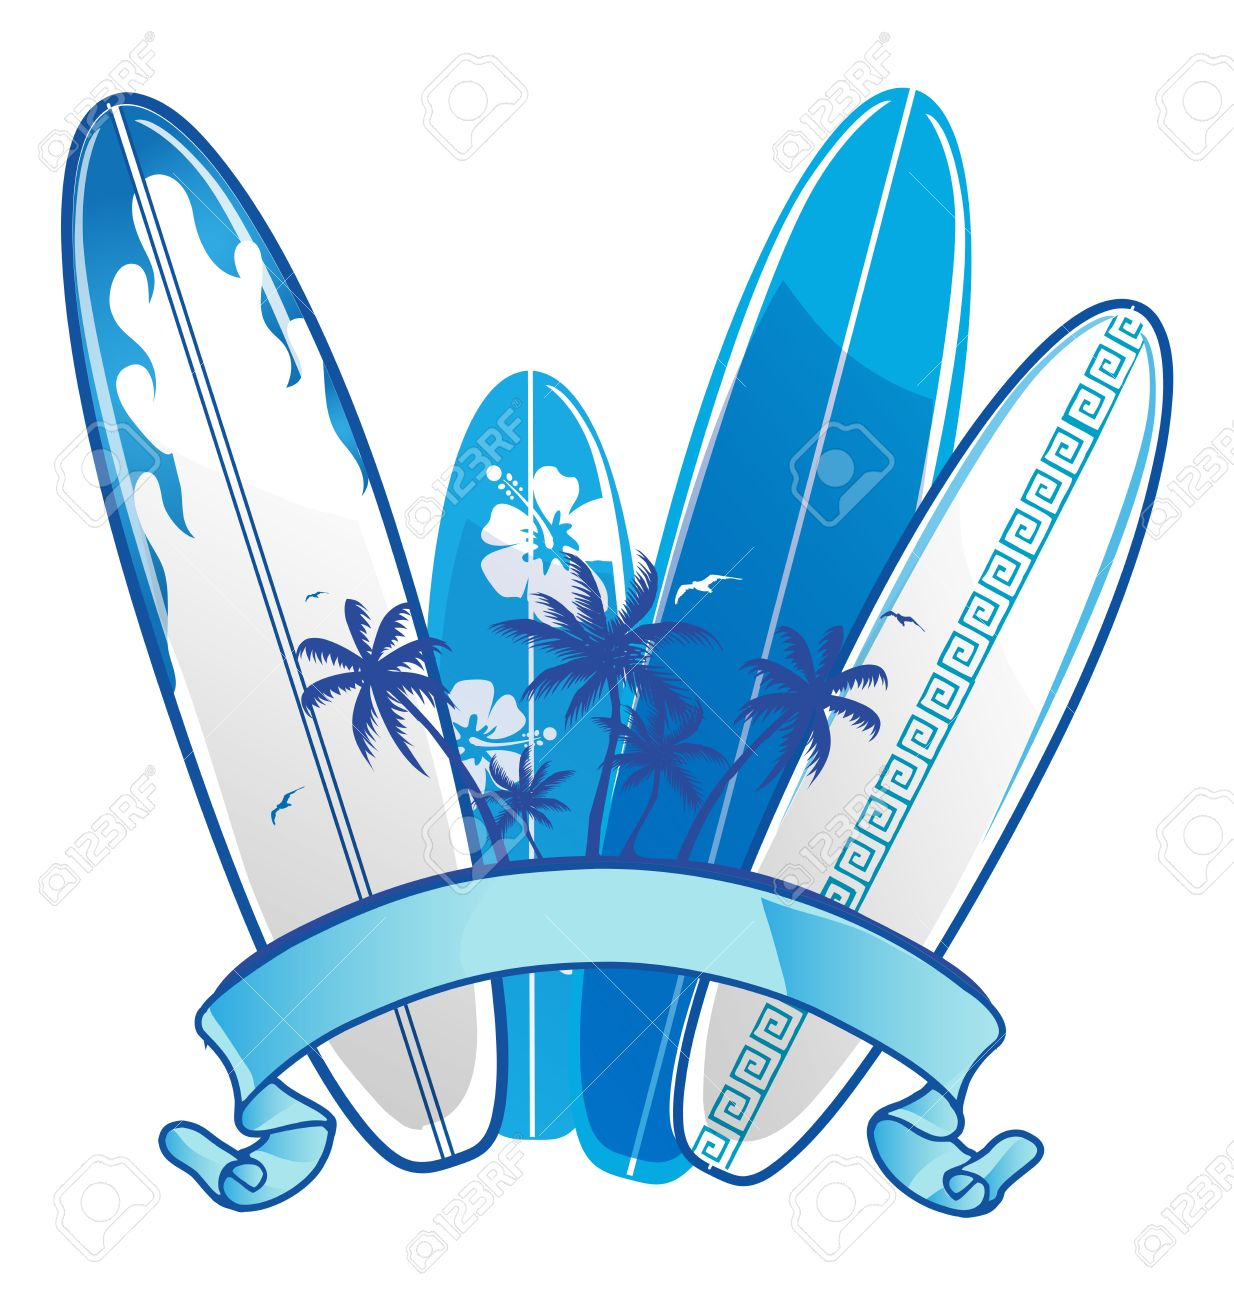 Surfboard signs background clipart clip freeuse library 11,644 Surfboard Stock Vector Illustration And Royalty Free ... clip freeuse library